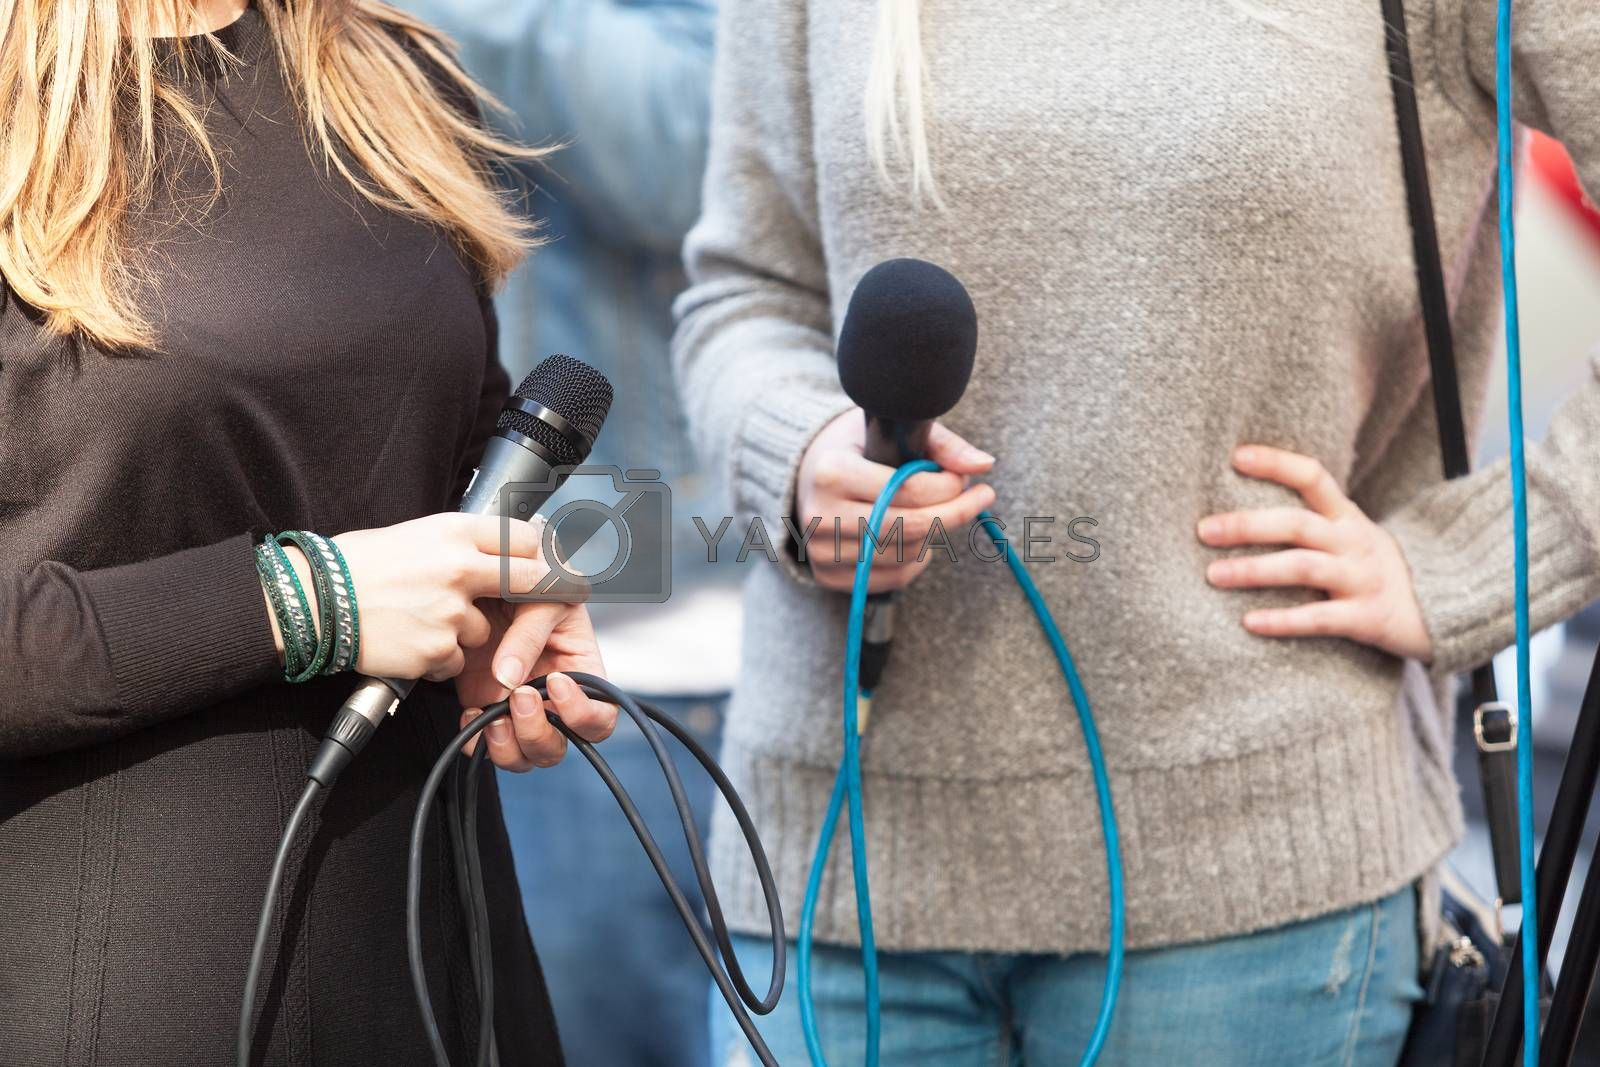 Female journalists holding microphones waiting for press conference